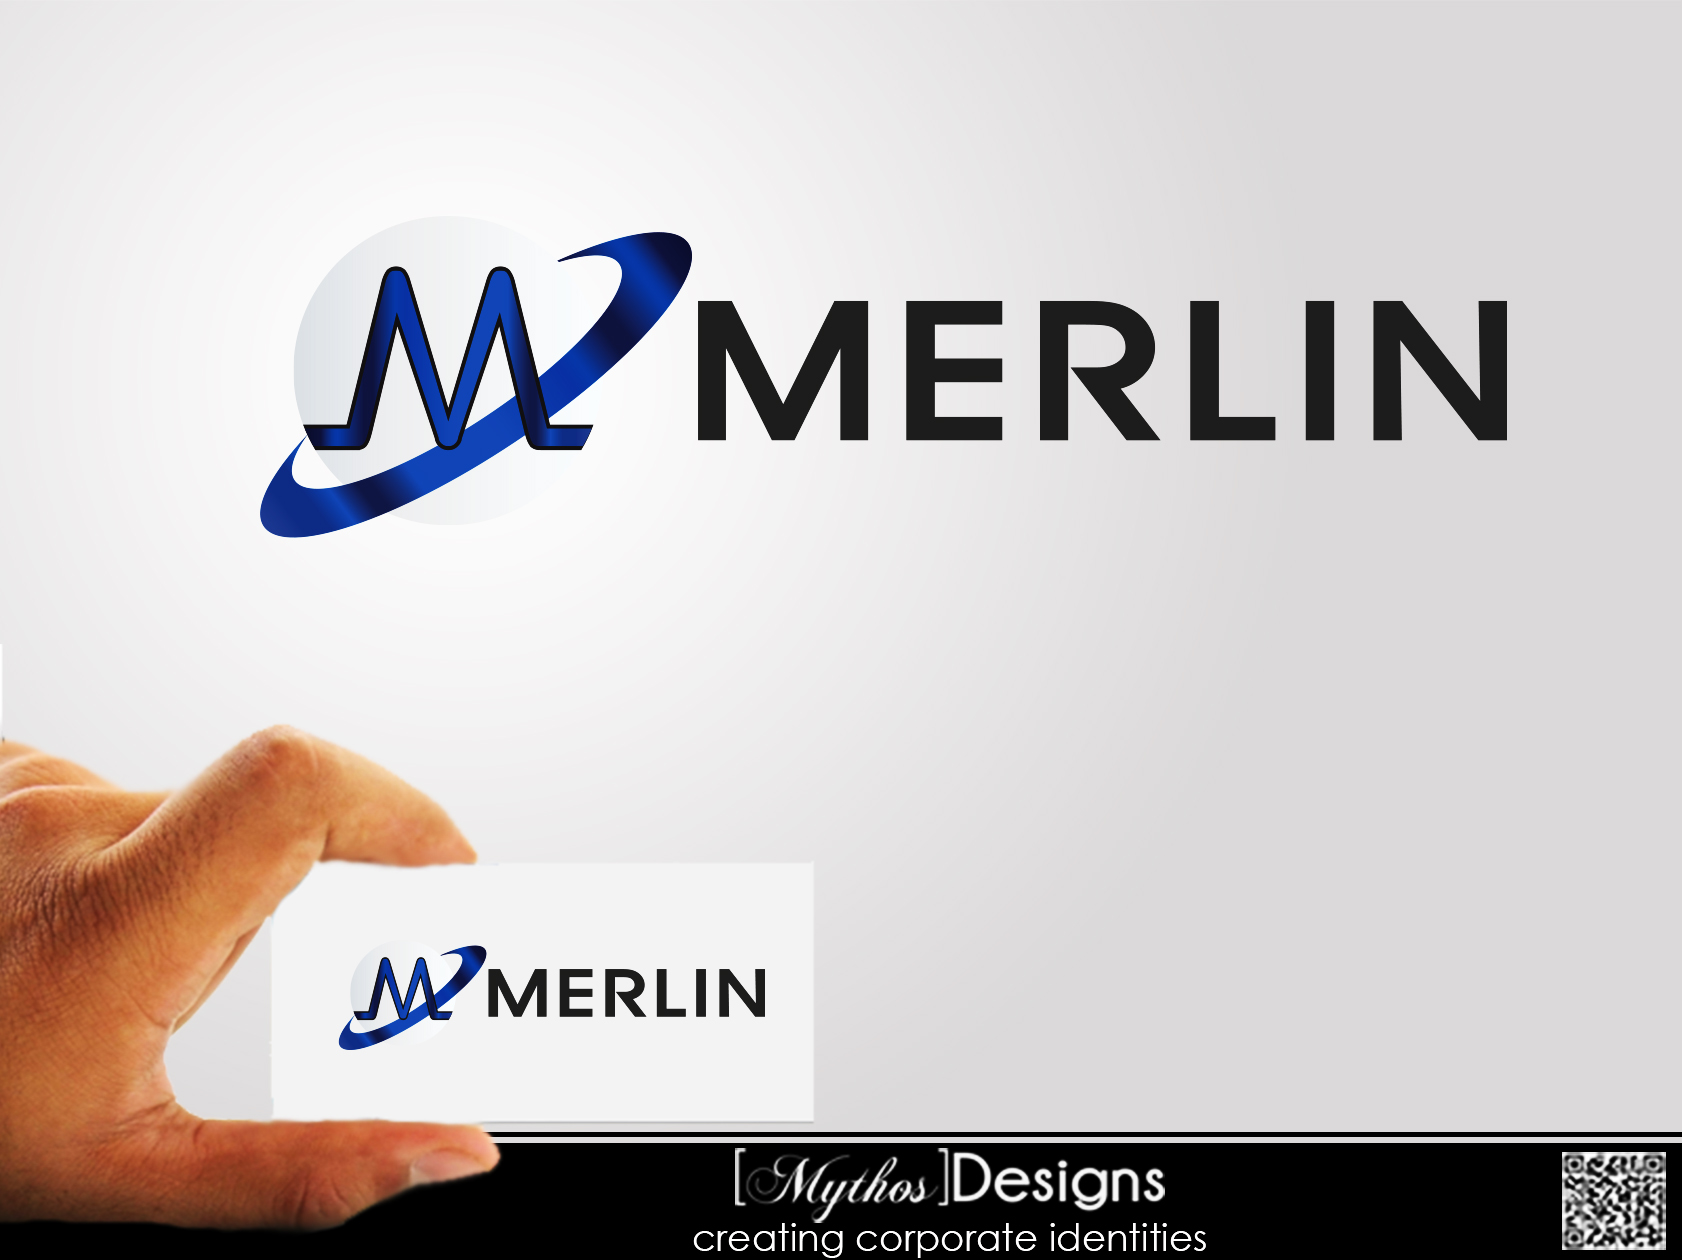 Logo Design by Mythos Designs - Entry No. 91 in the Logo Design Contest Imaginative Logo Design for Merlin.